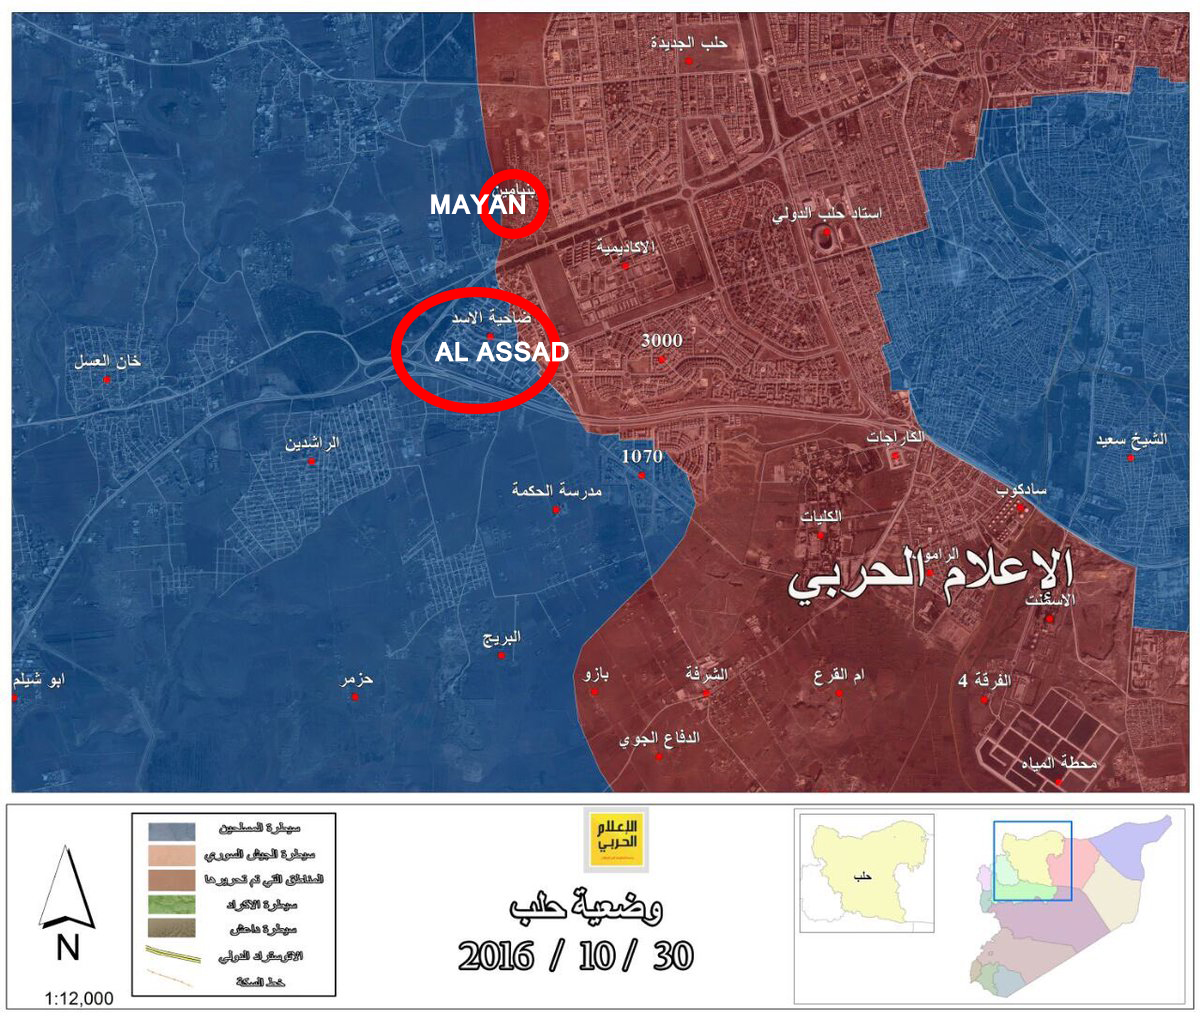 Overview of Military Situation in Aleppo City on October 31, 2016